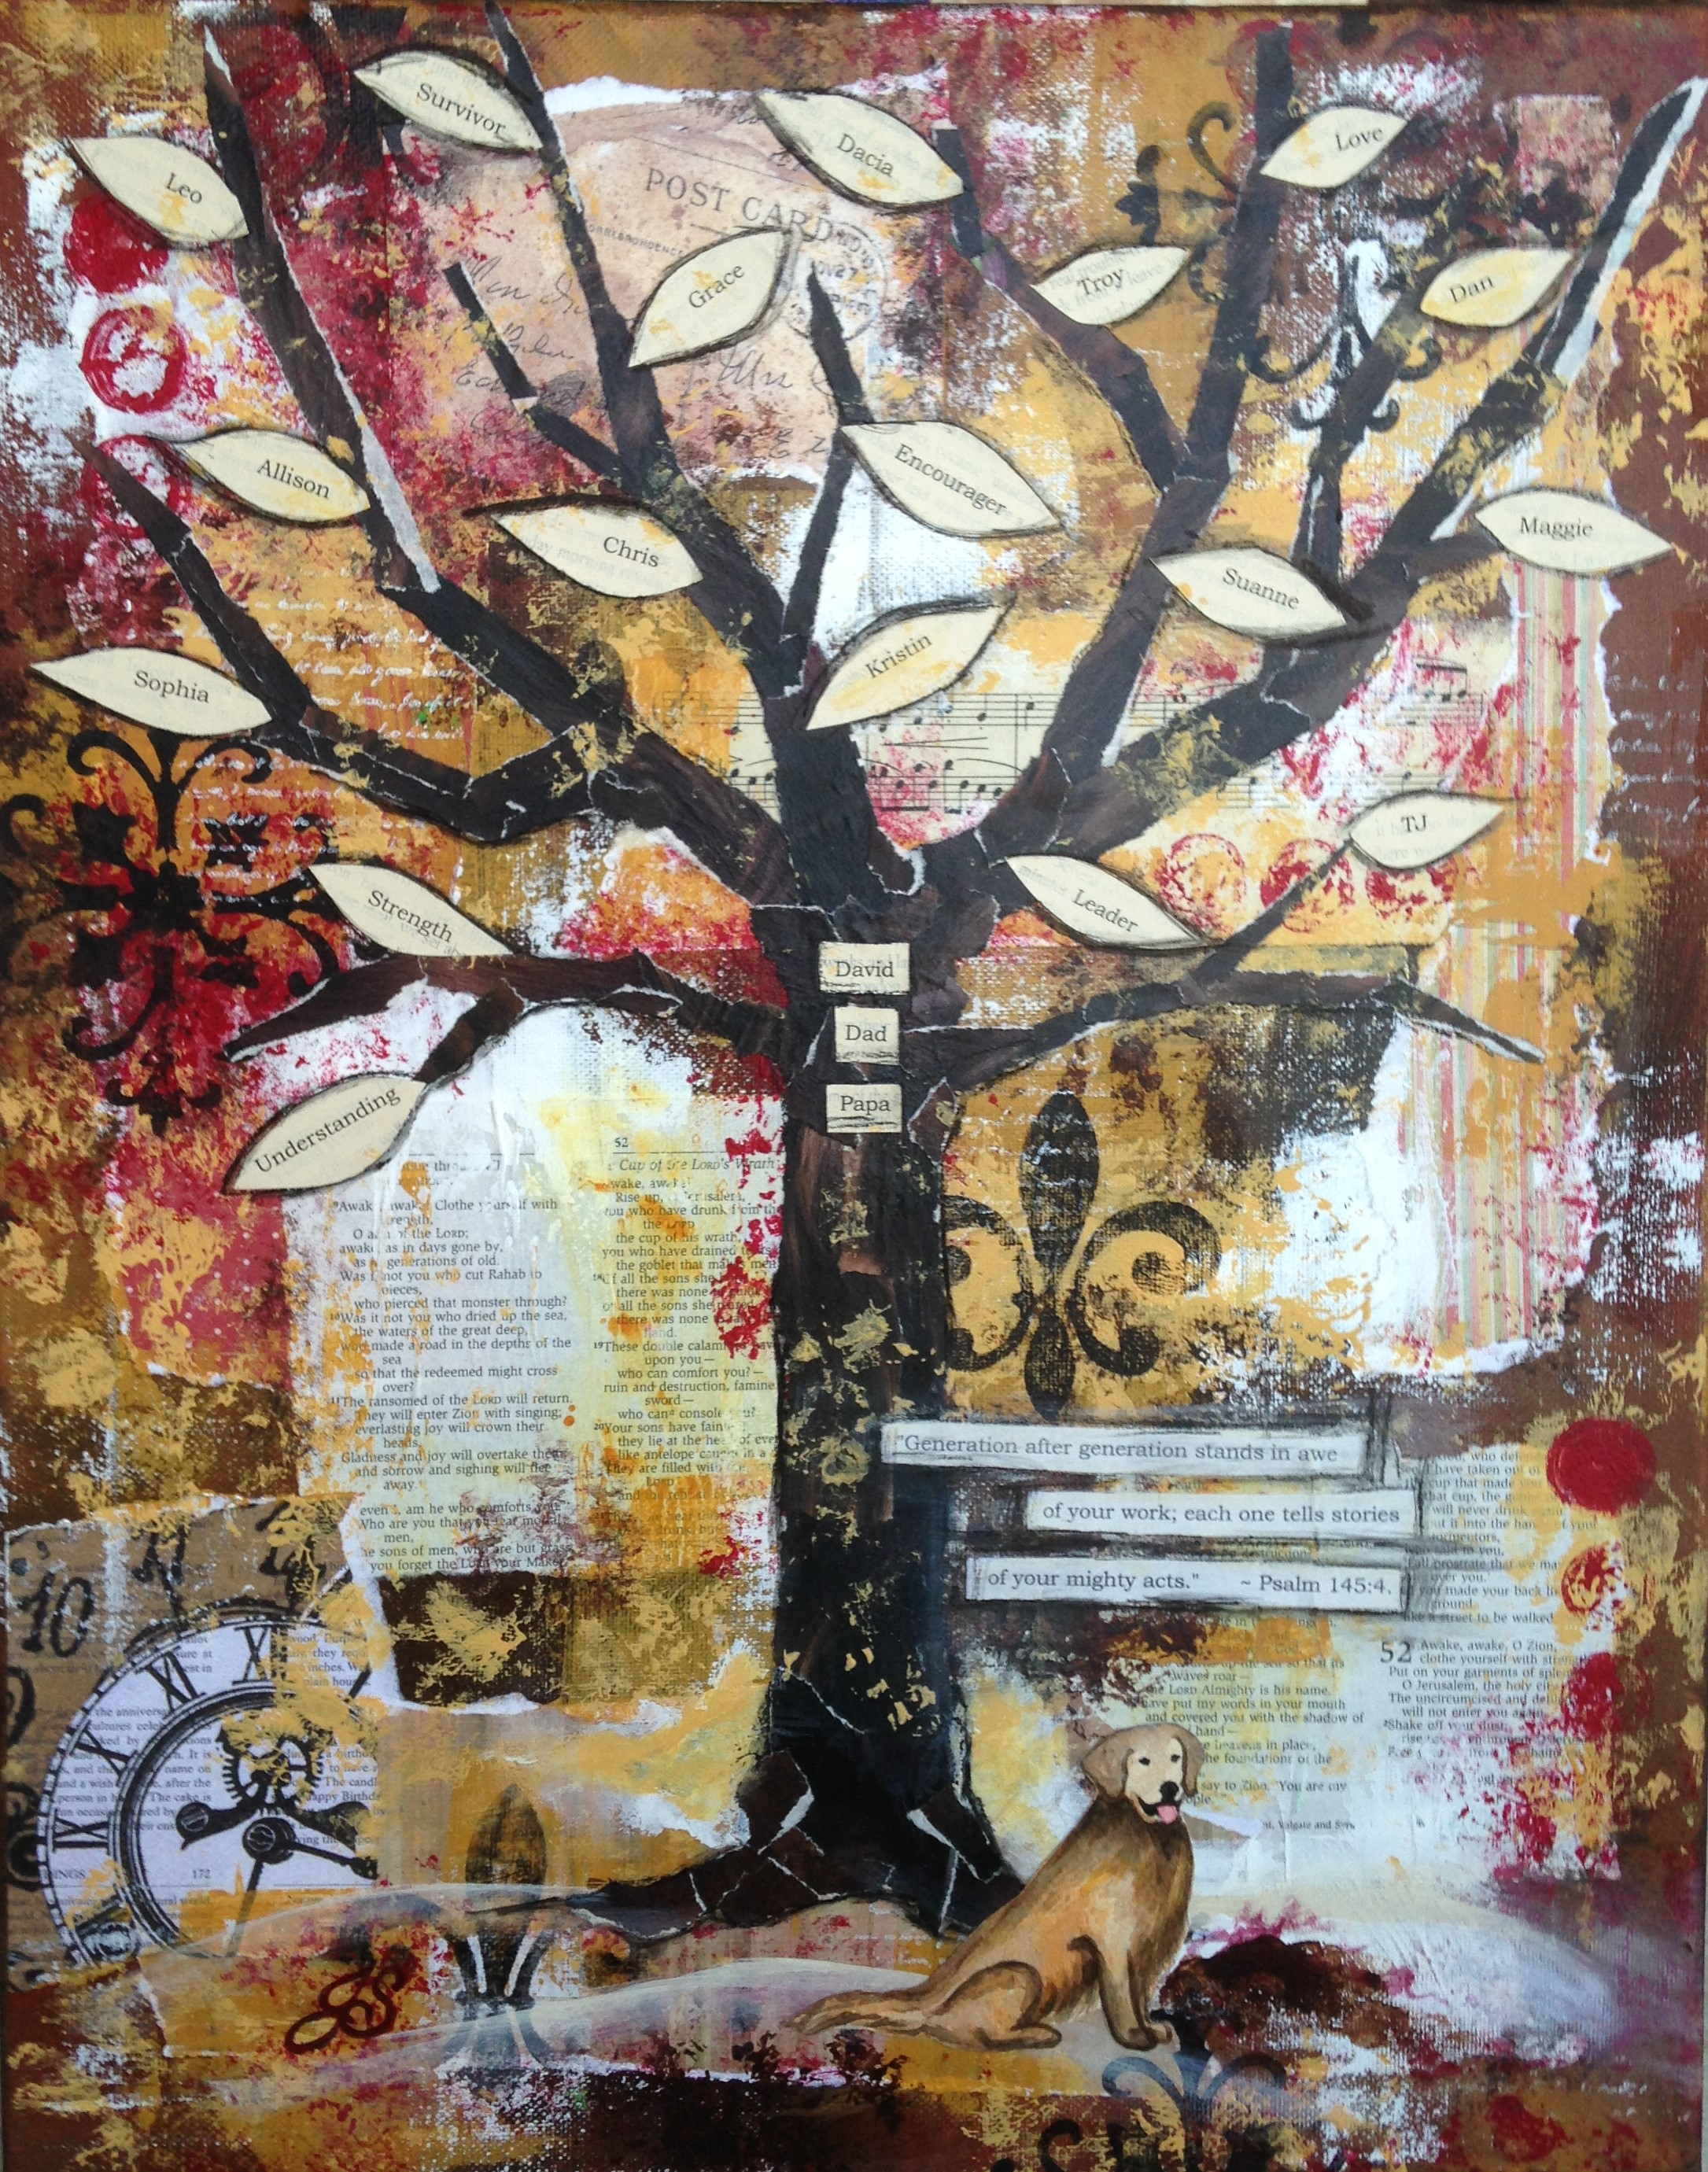 Legacy Tree for David, Mixed Media by Jennifer Snellngs, SOLD